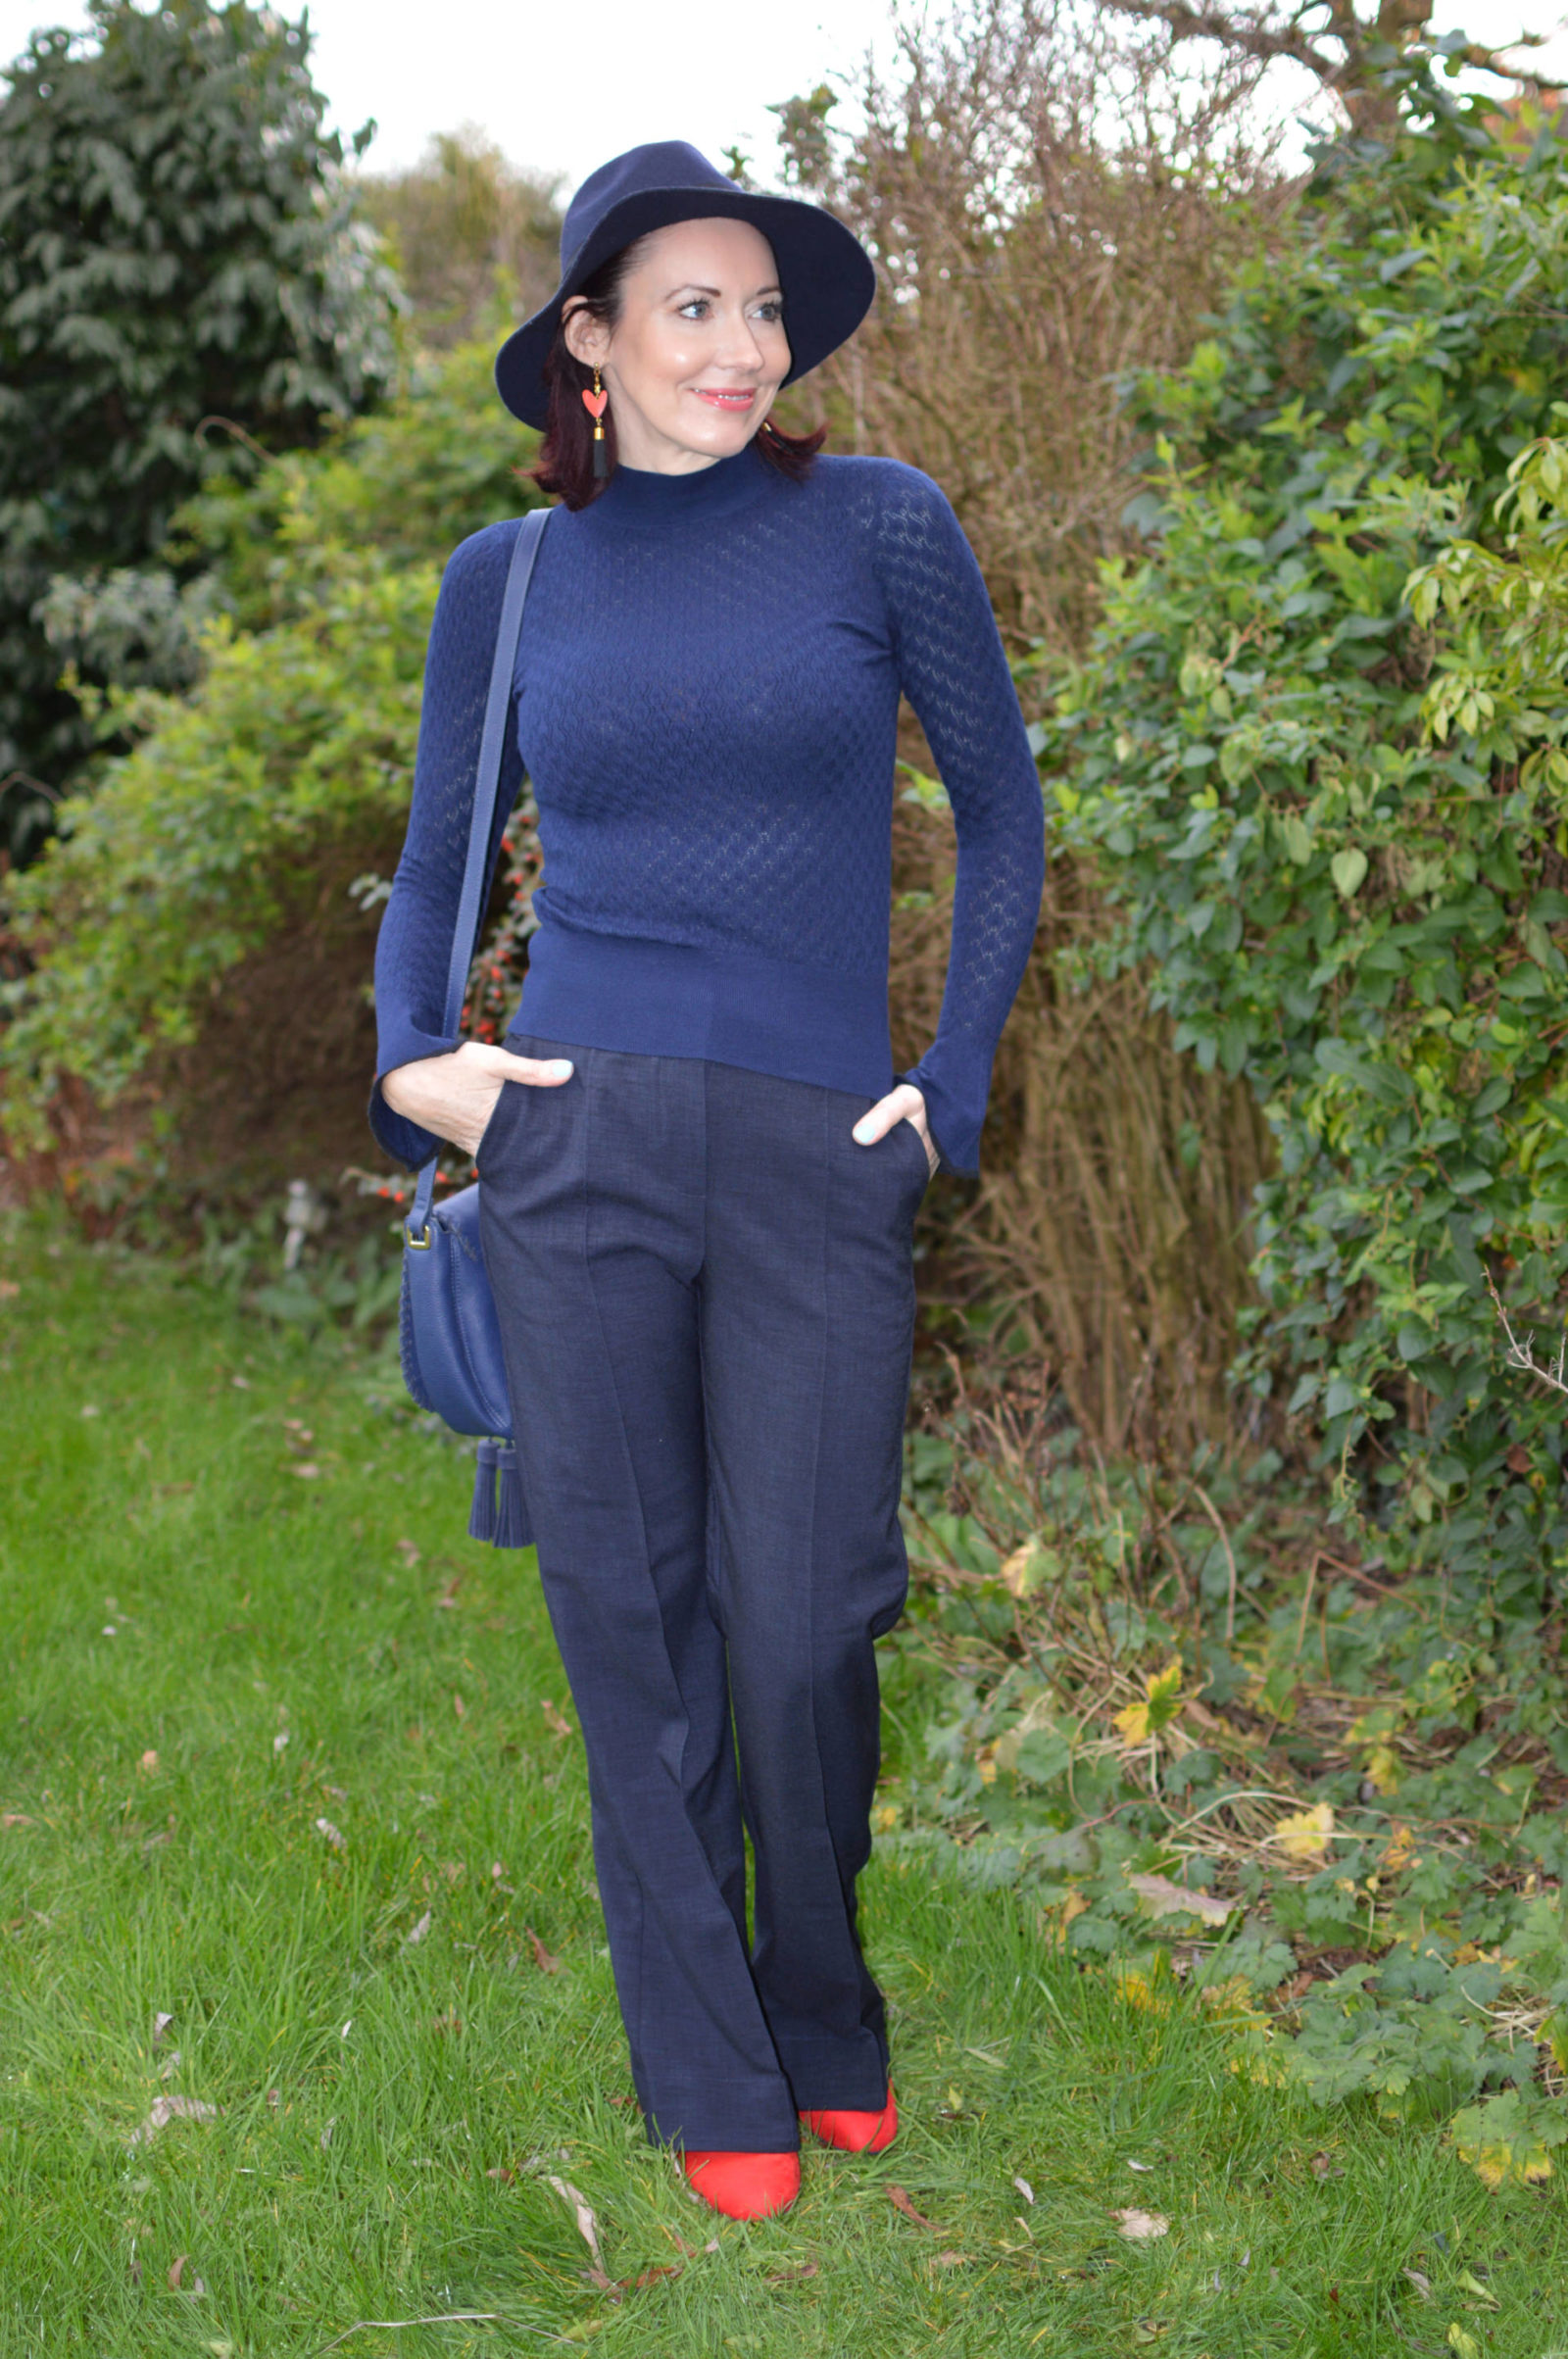 Finery navy trousers, Warehouse pointelle sweater, Laura Ashley navy tassel bag